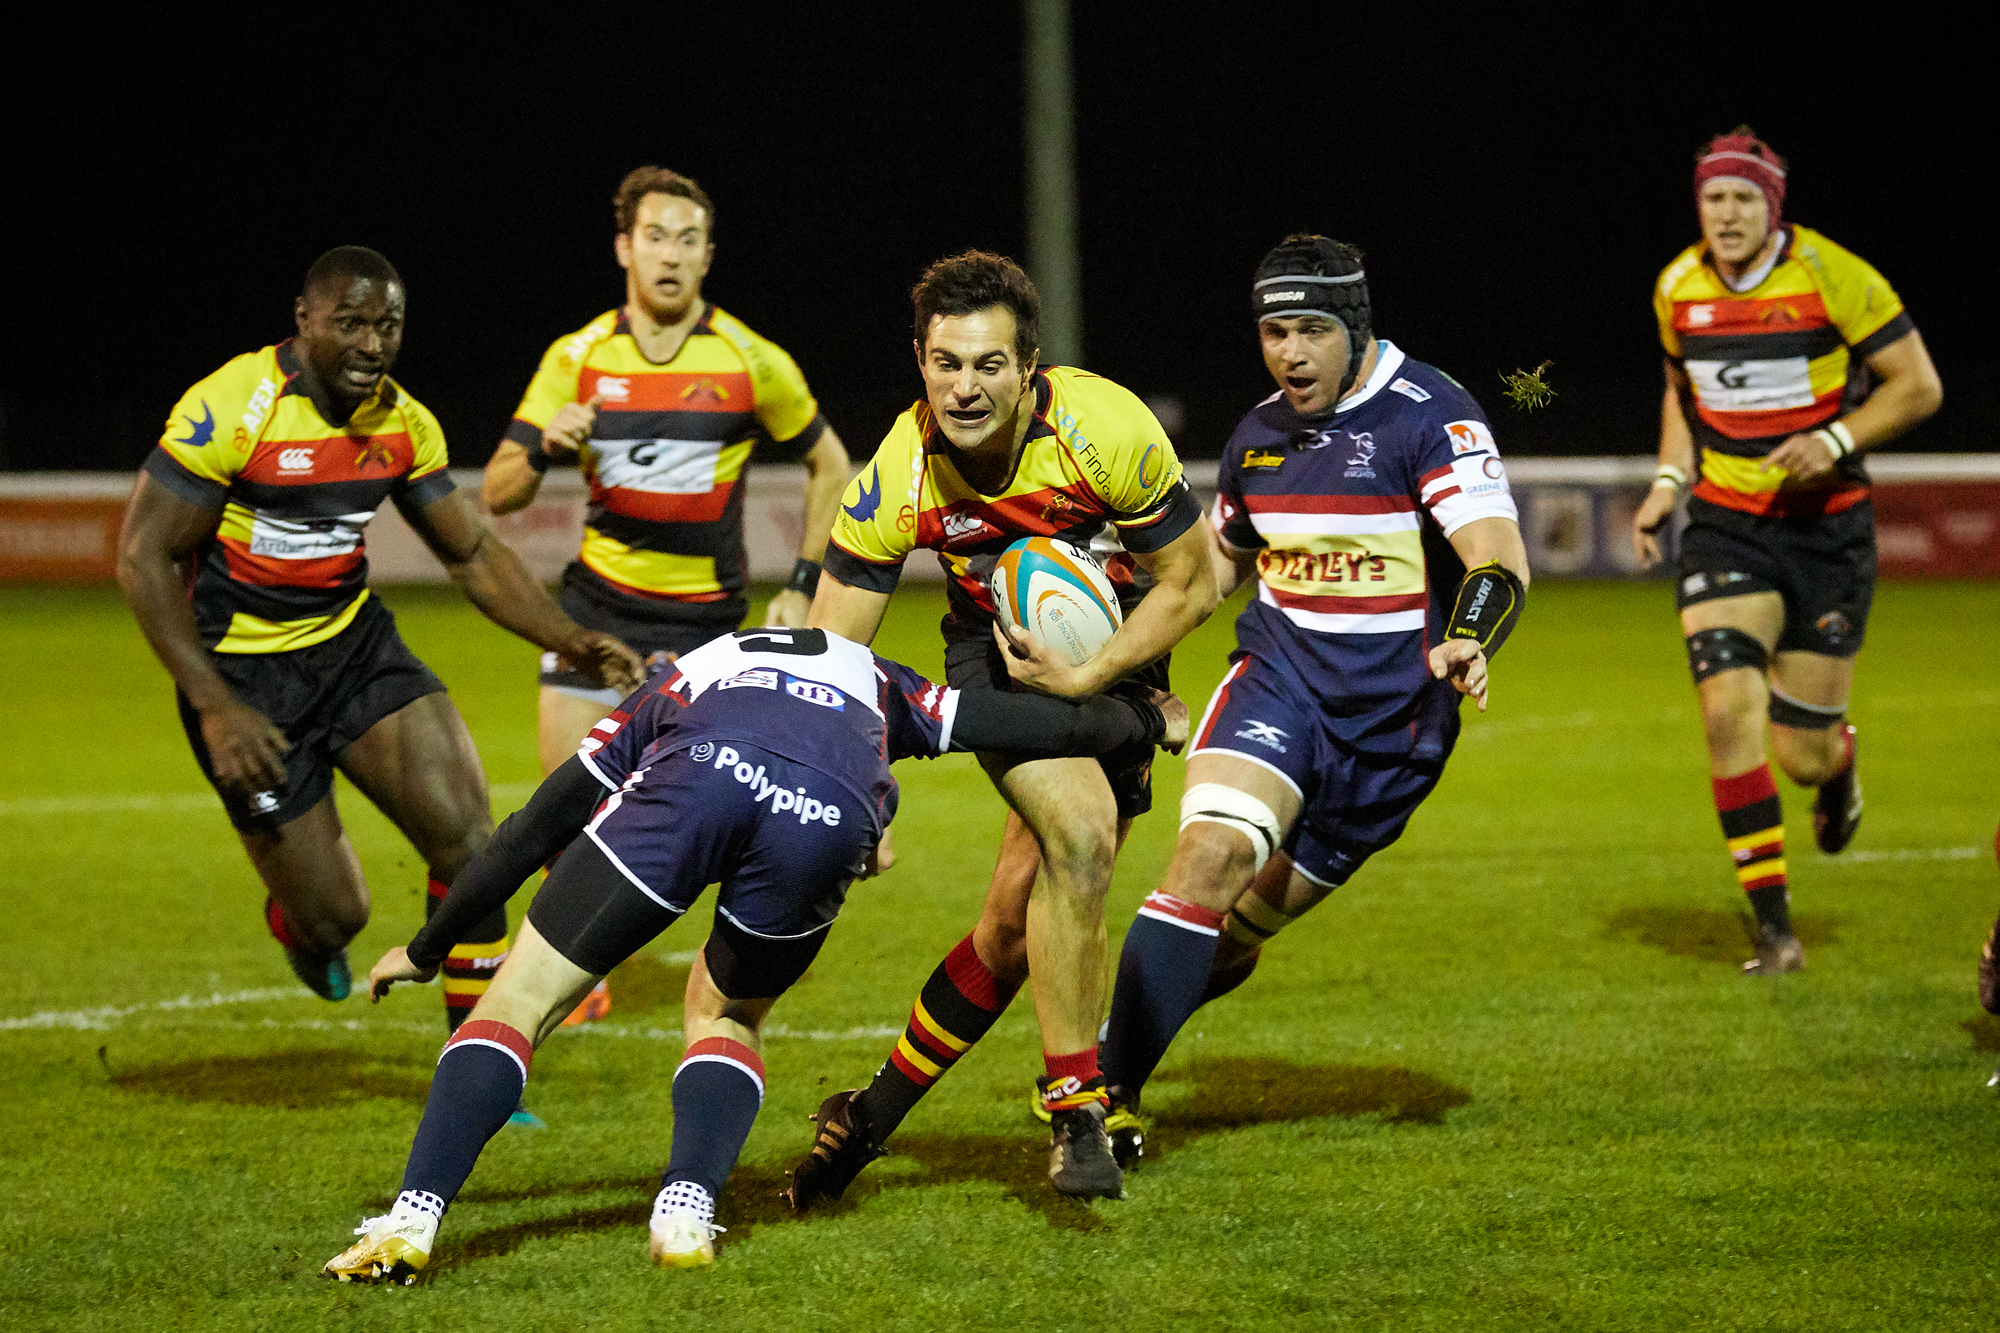 Richmond RFC focus on TV clash after loss to Cornish Pirates